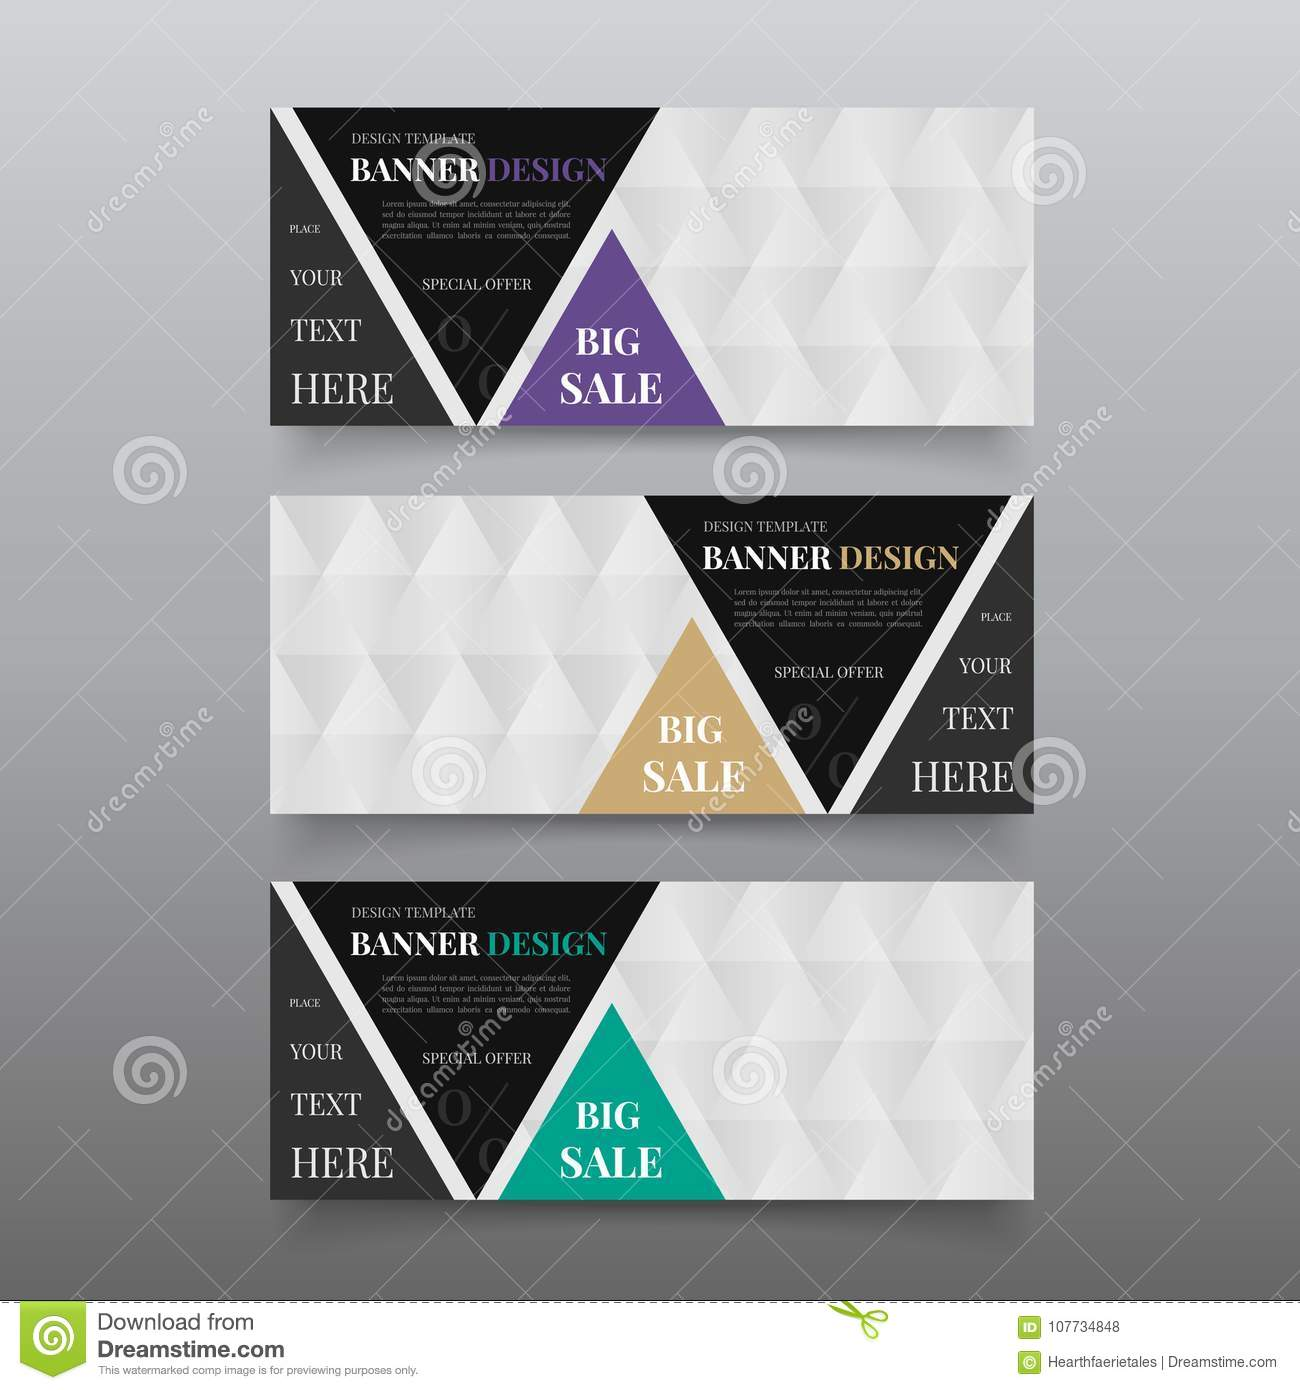 Triangle banner design templates web banner design vector website triangle banner design templates web banner design vector website banner template with text fbccfo